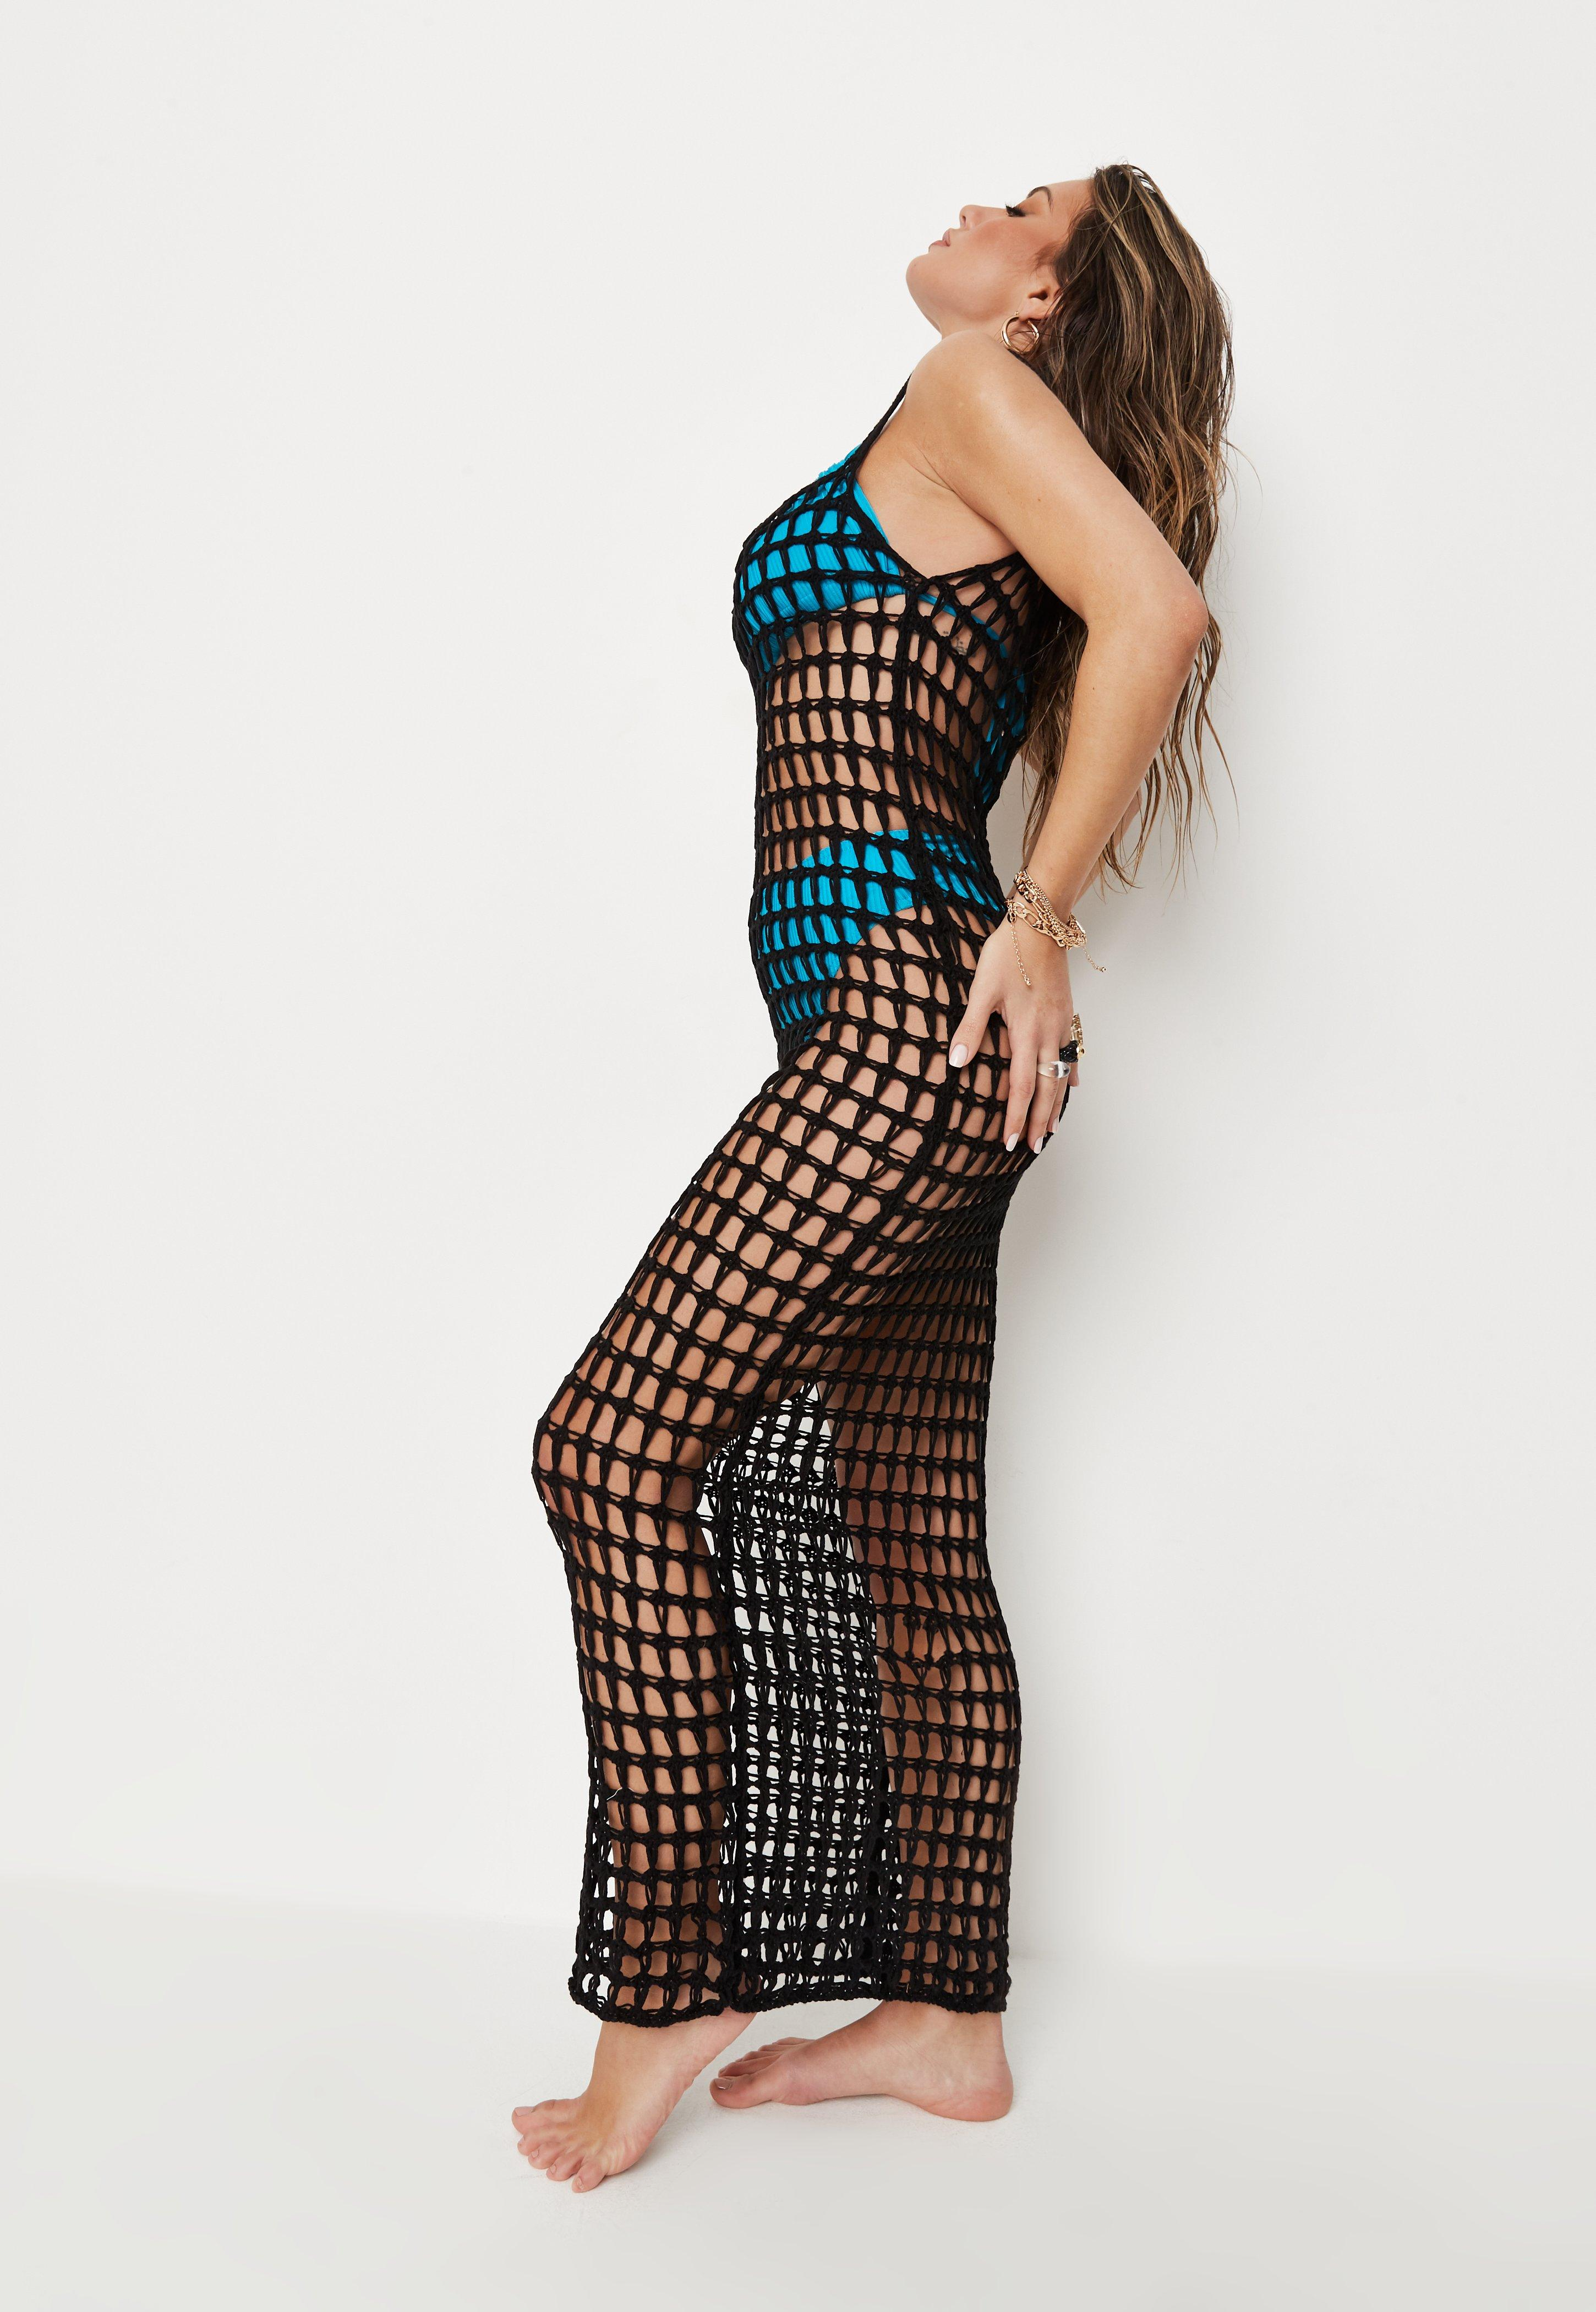 47cd47e460fa Back In Stock Clothing - Women's Fashion Online - Missguided